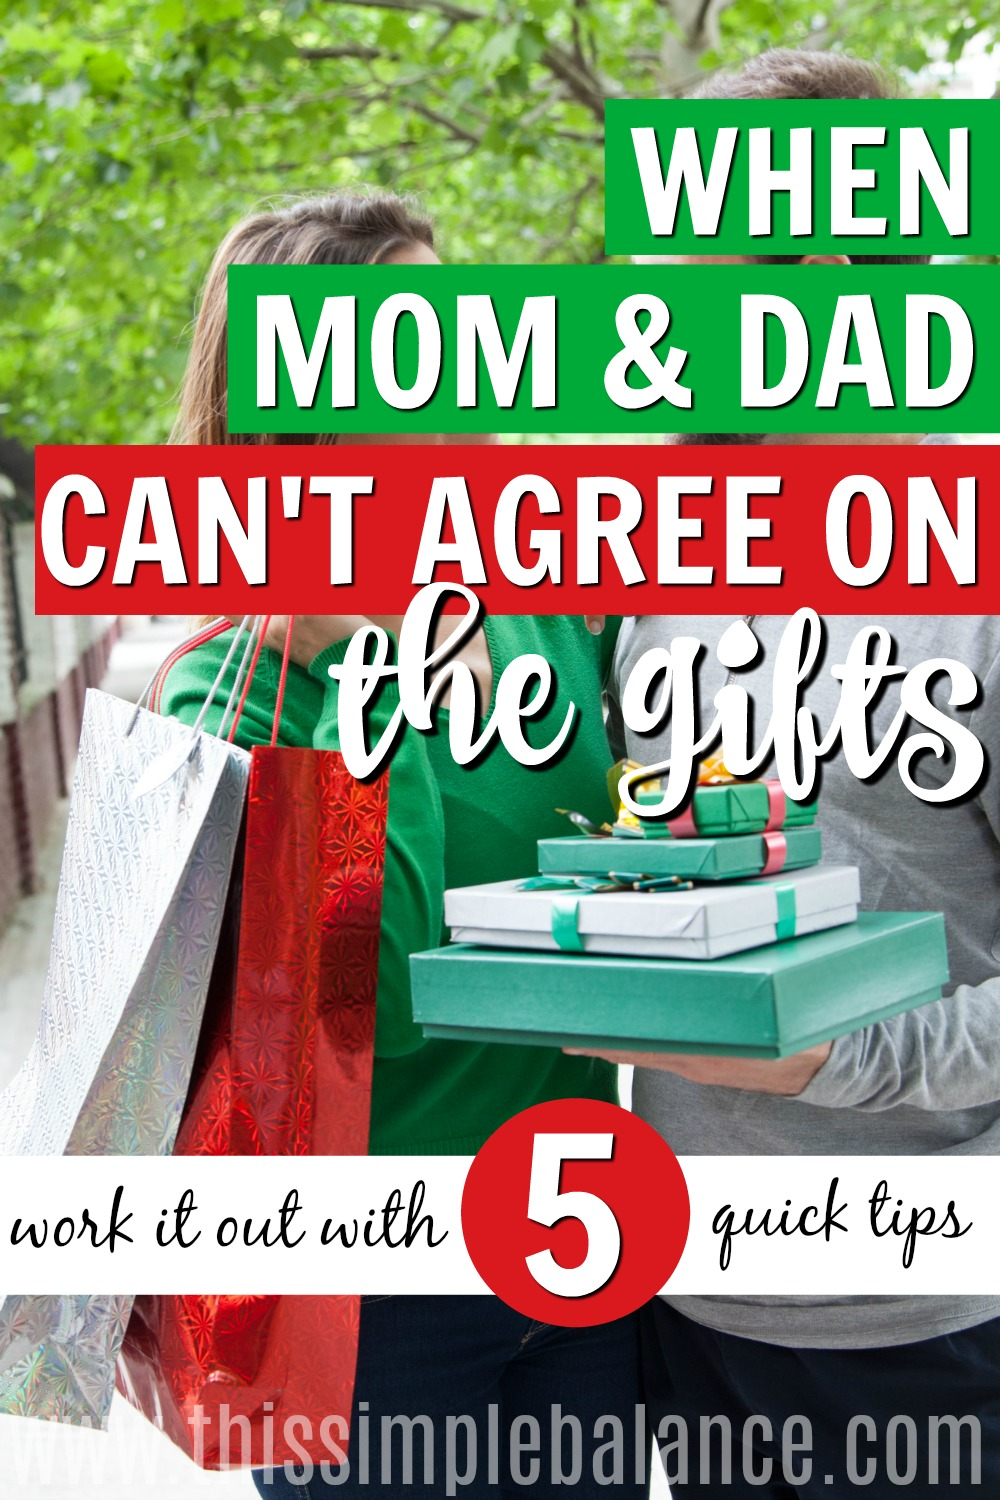 Are you and your spouse having trouble agreeing on what to get the kids for Christmas? Try these 5 quick tips to work it out! #Christmasgiftsforkids